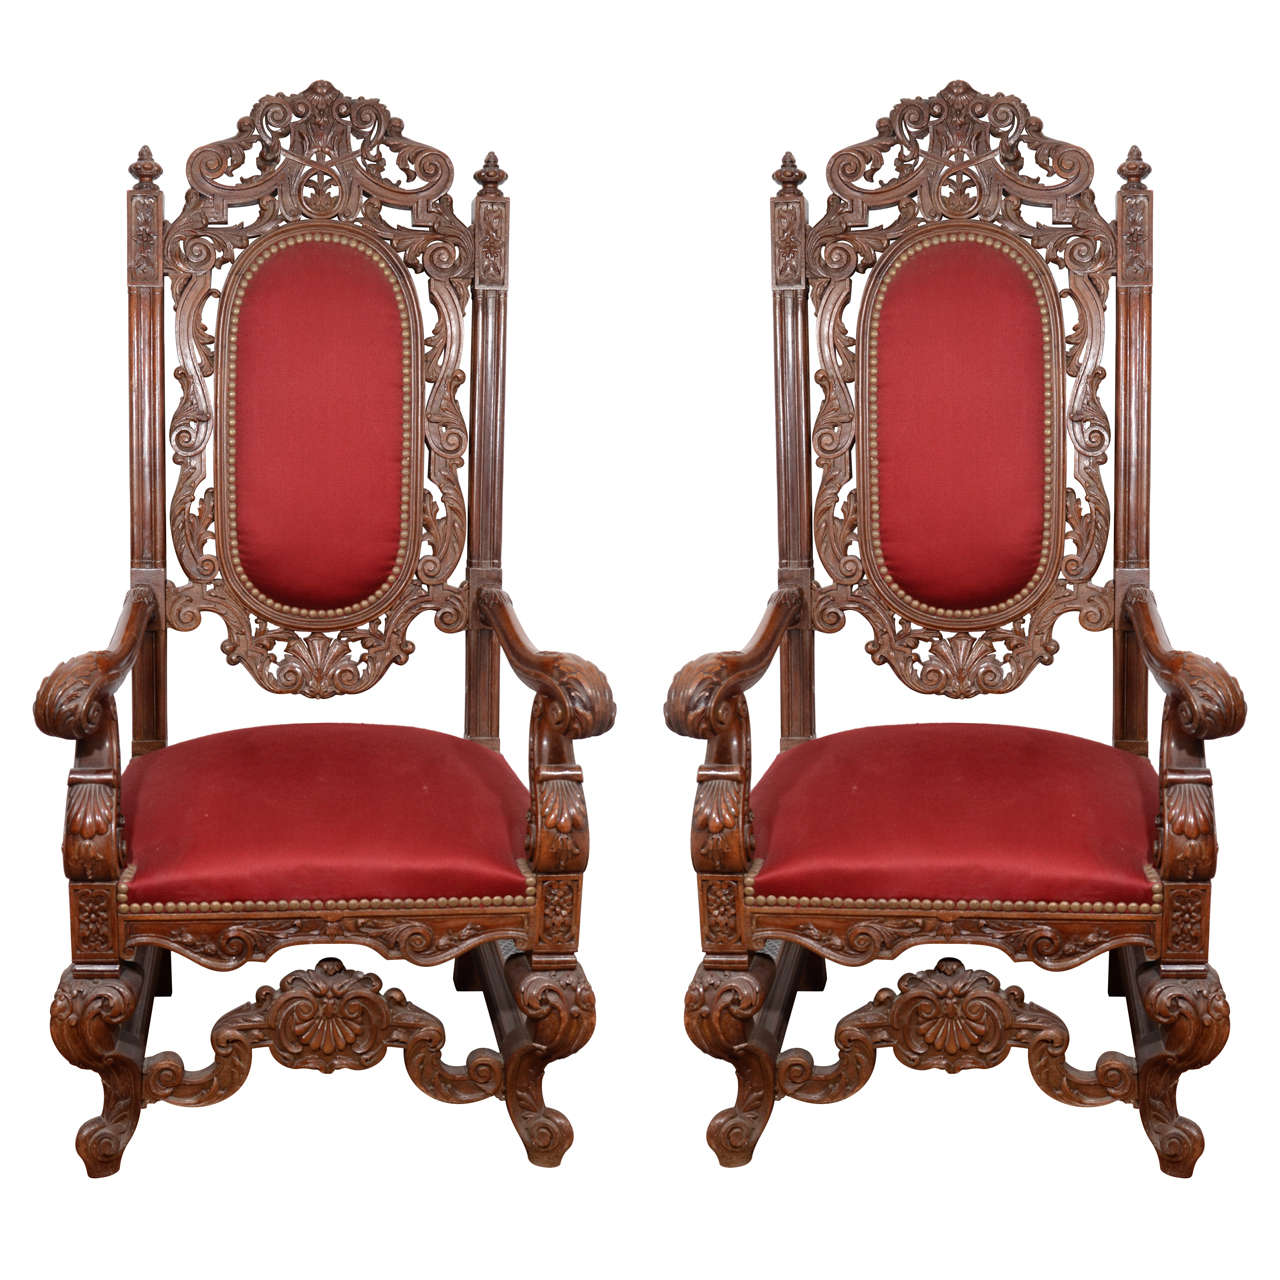 Late 19th Century Pair of Italian Style Ornately Carved Throne Chairs - 19th Century German Carved Mahogany Throne Chair For Sale At 1stdibs